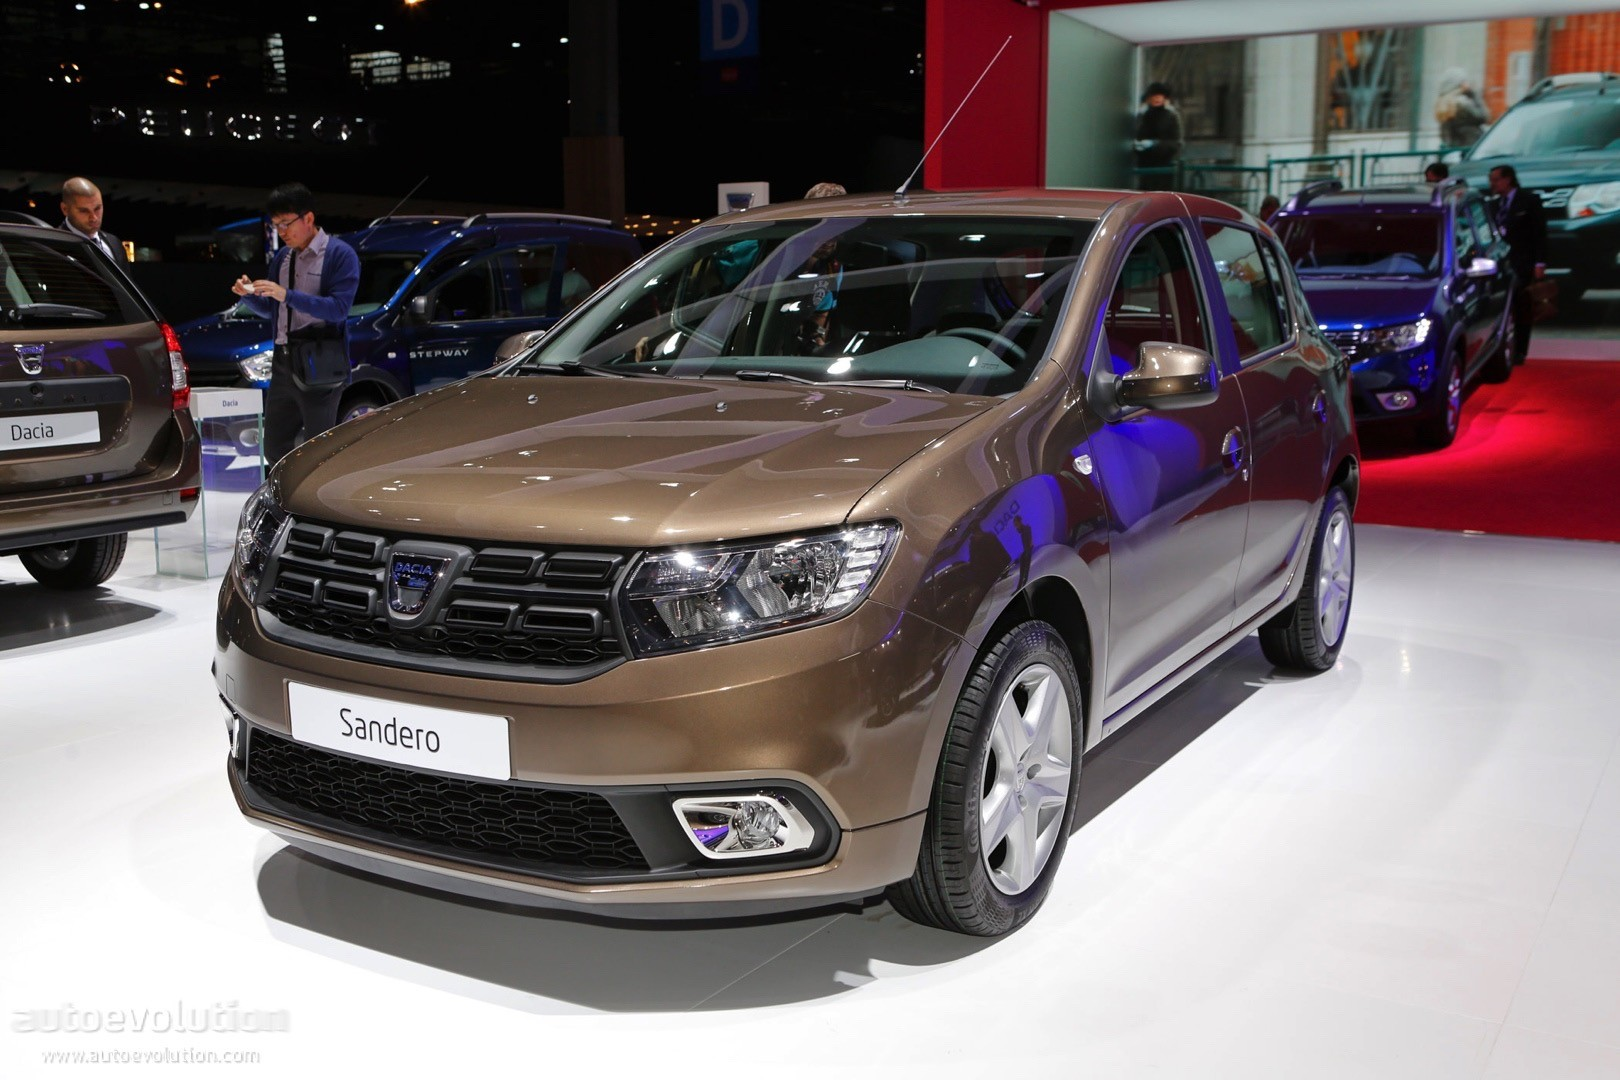 facelifted dacia model lineup shines bright under paris lights autoevolution. Black Bedroom Furniture Sets. Home Design Ideas